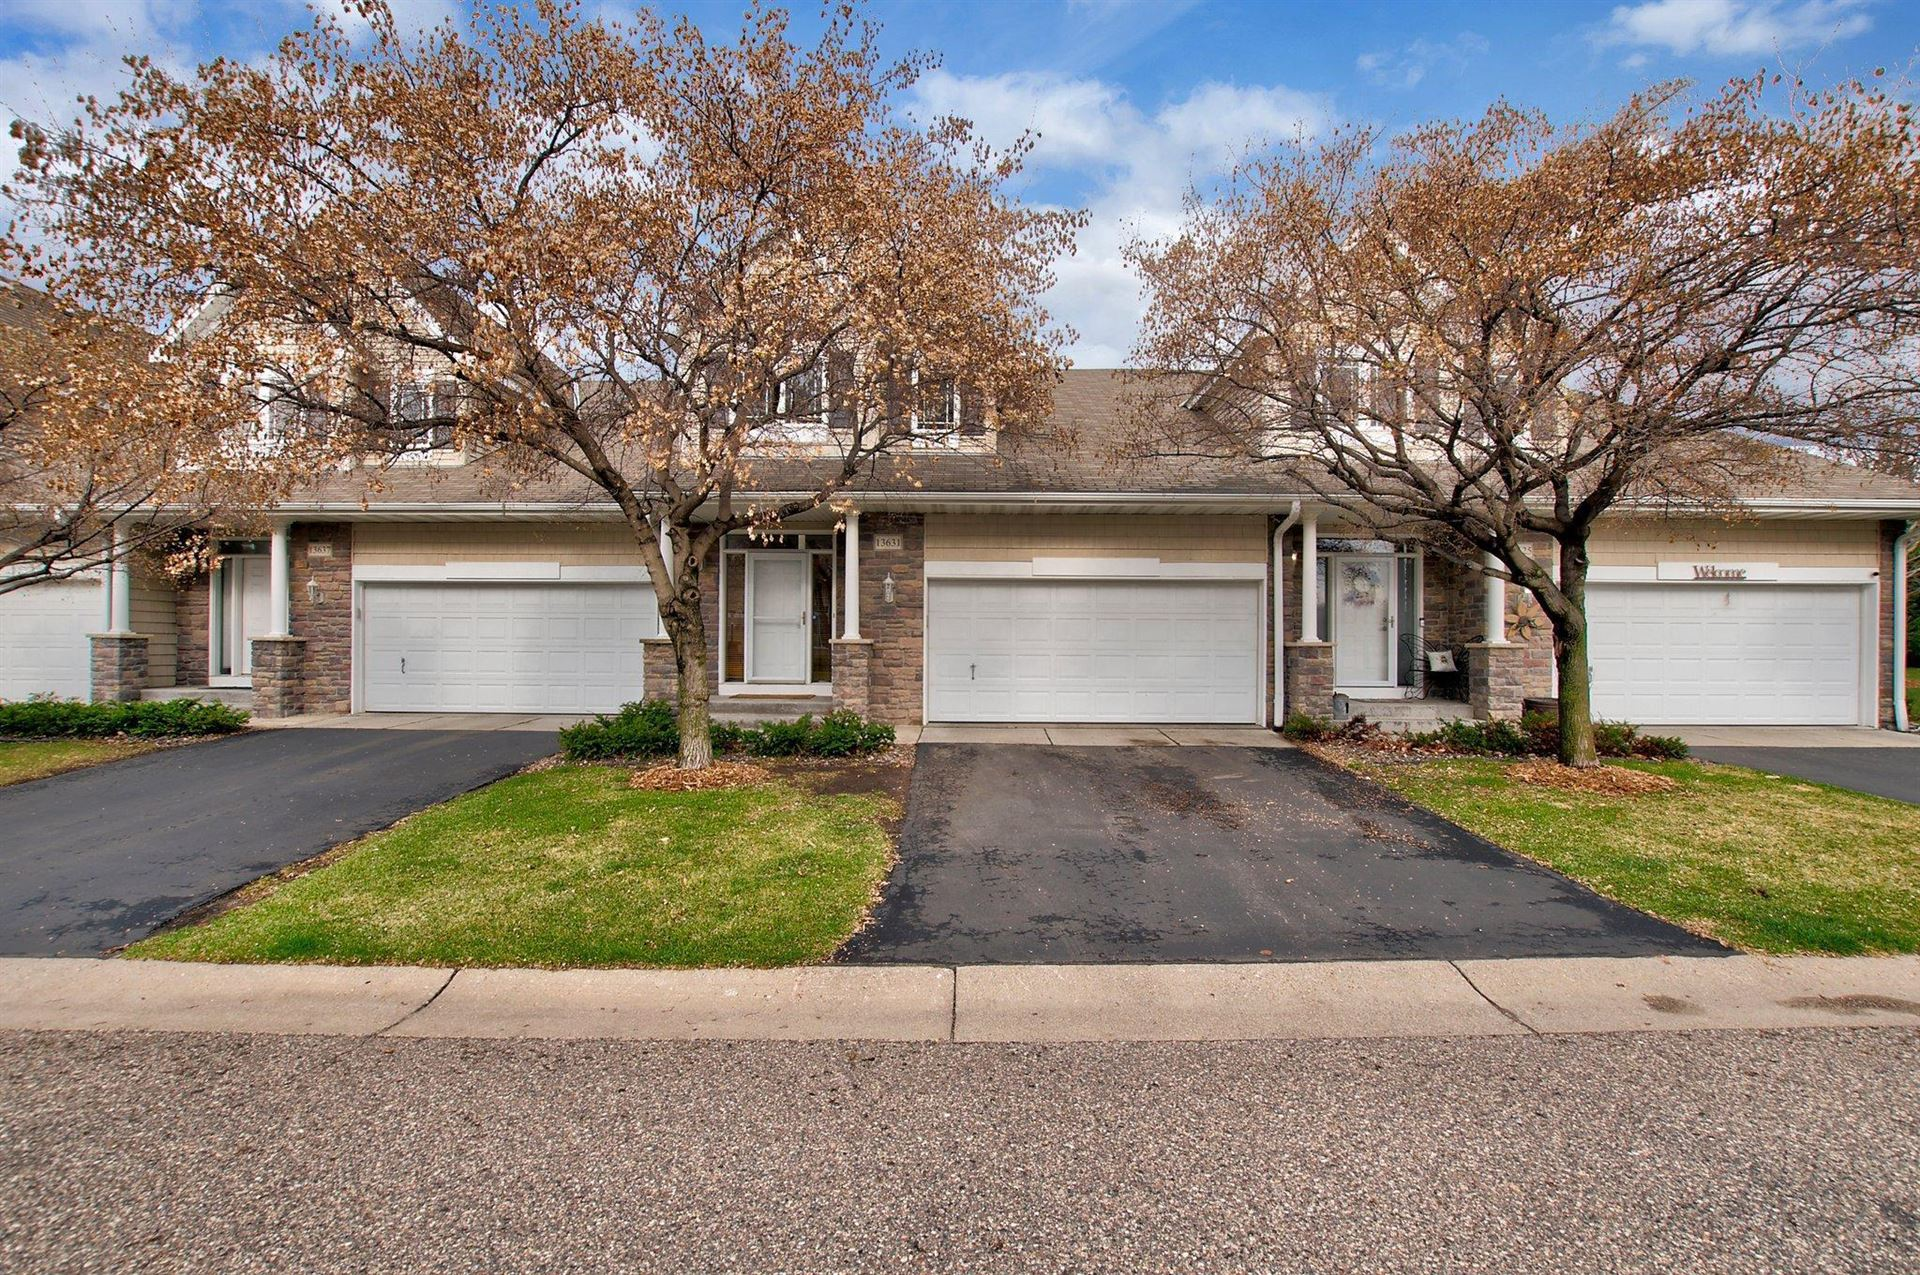 Photo of 13631 Couchtown Avenue, Rosemount, MN 55068 (MLS # 5737472)